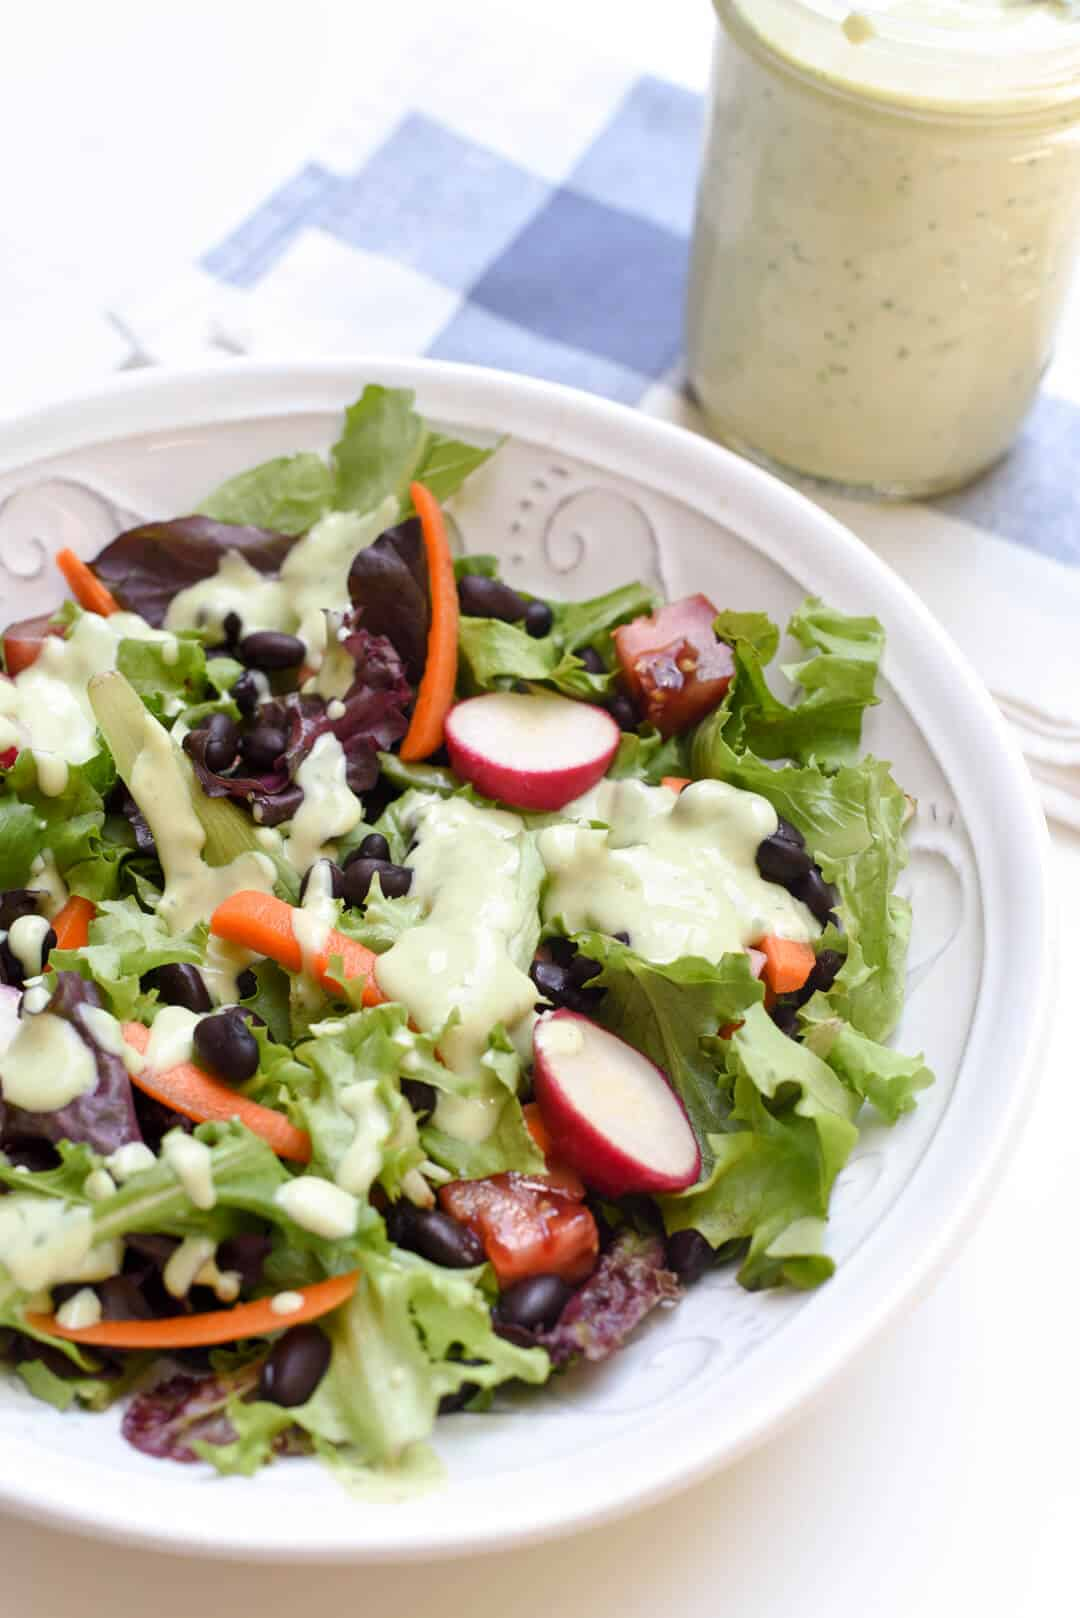 This Avocado Ranch Dressing is a healthier way to add great flavor to your summer salads. It also makes a delicious party dip or sauce for tacos or wraps.